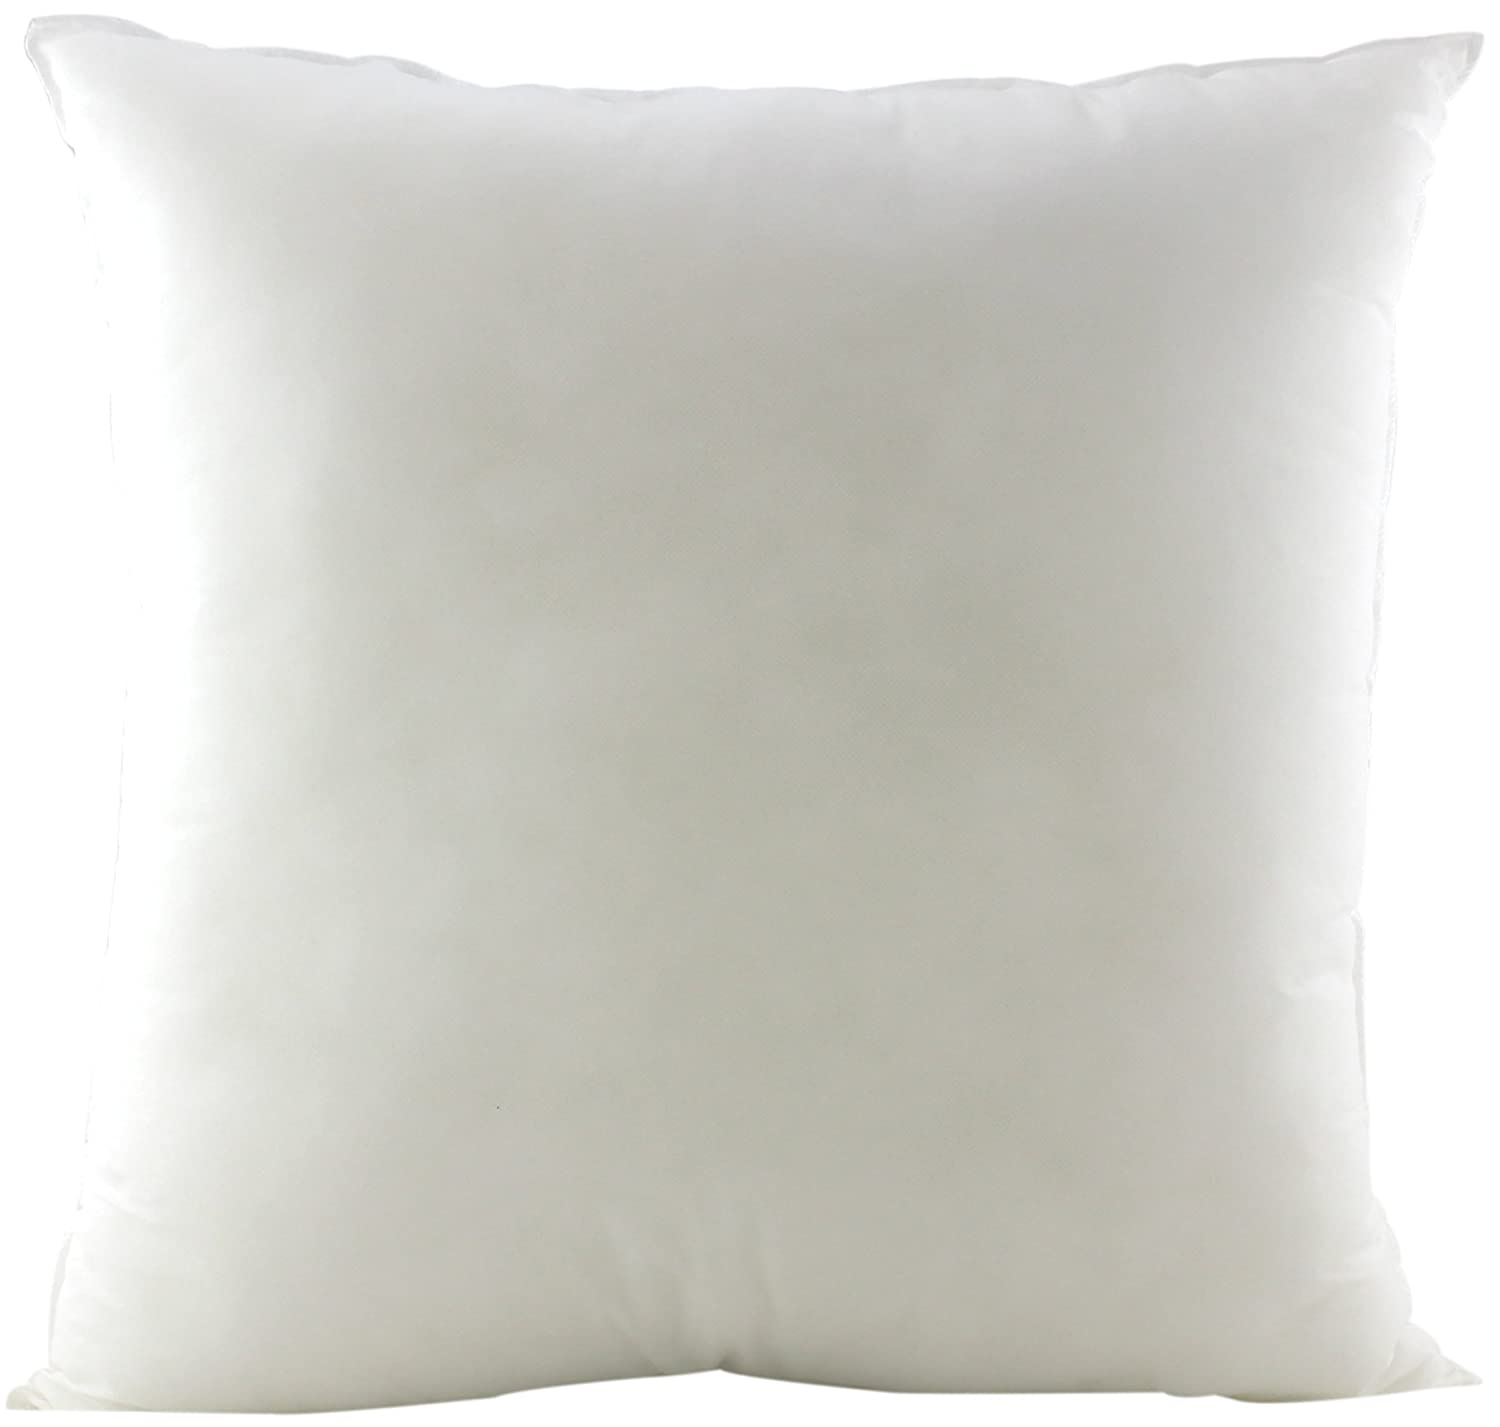 Pile of Pillows Form Insert Cushion-18X18-Inch-4 Pack 6610